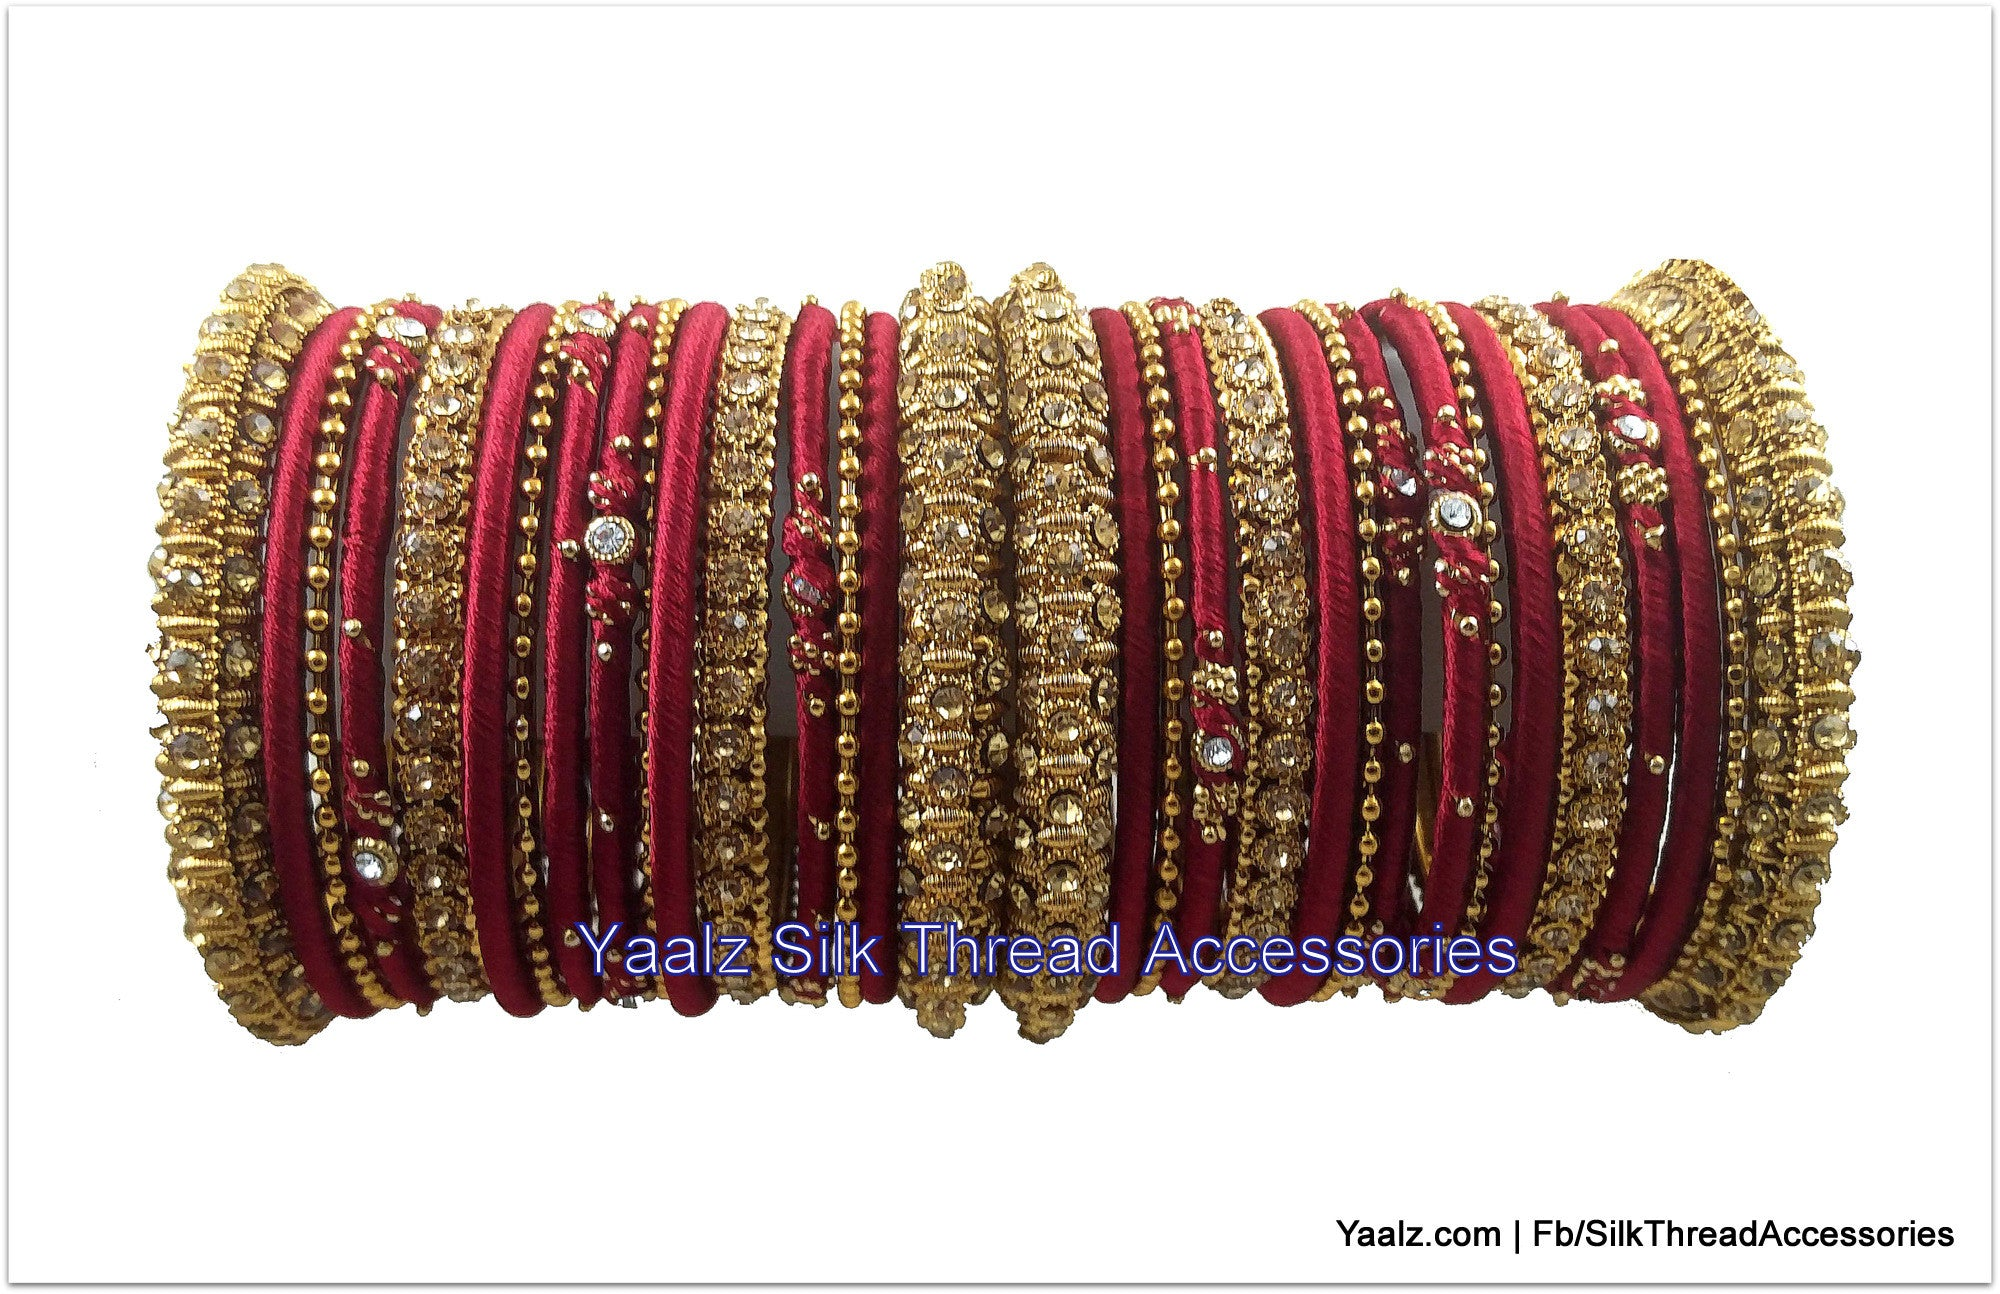 supreno thread bangles with stone bright multi and sylque colored metal work beautiful silk